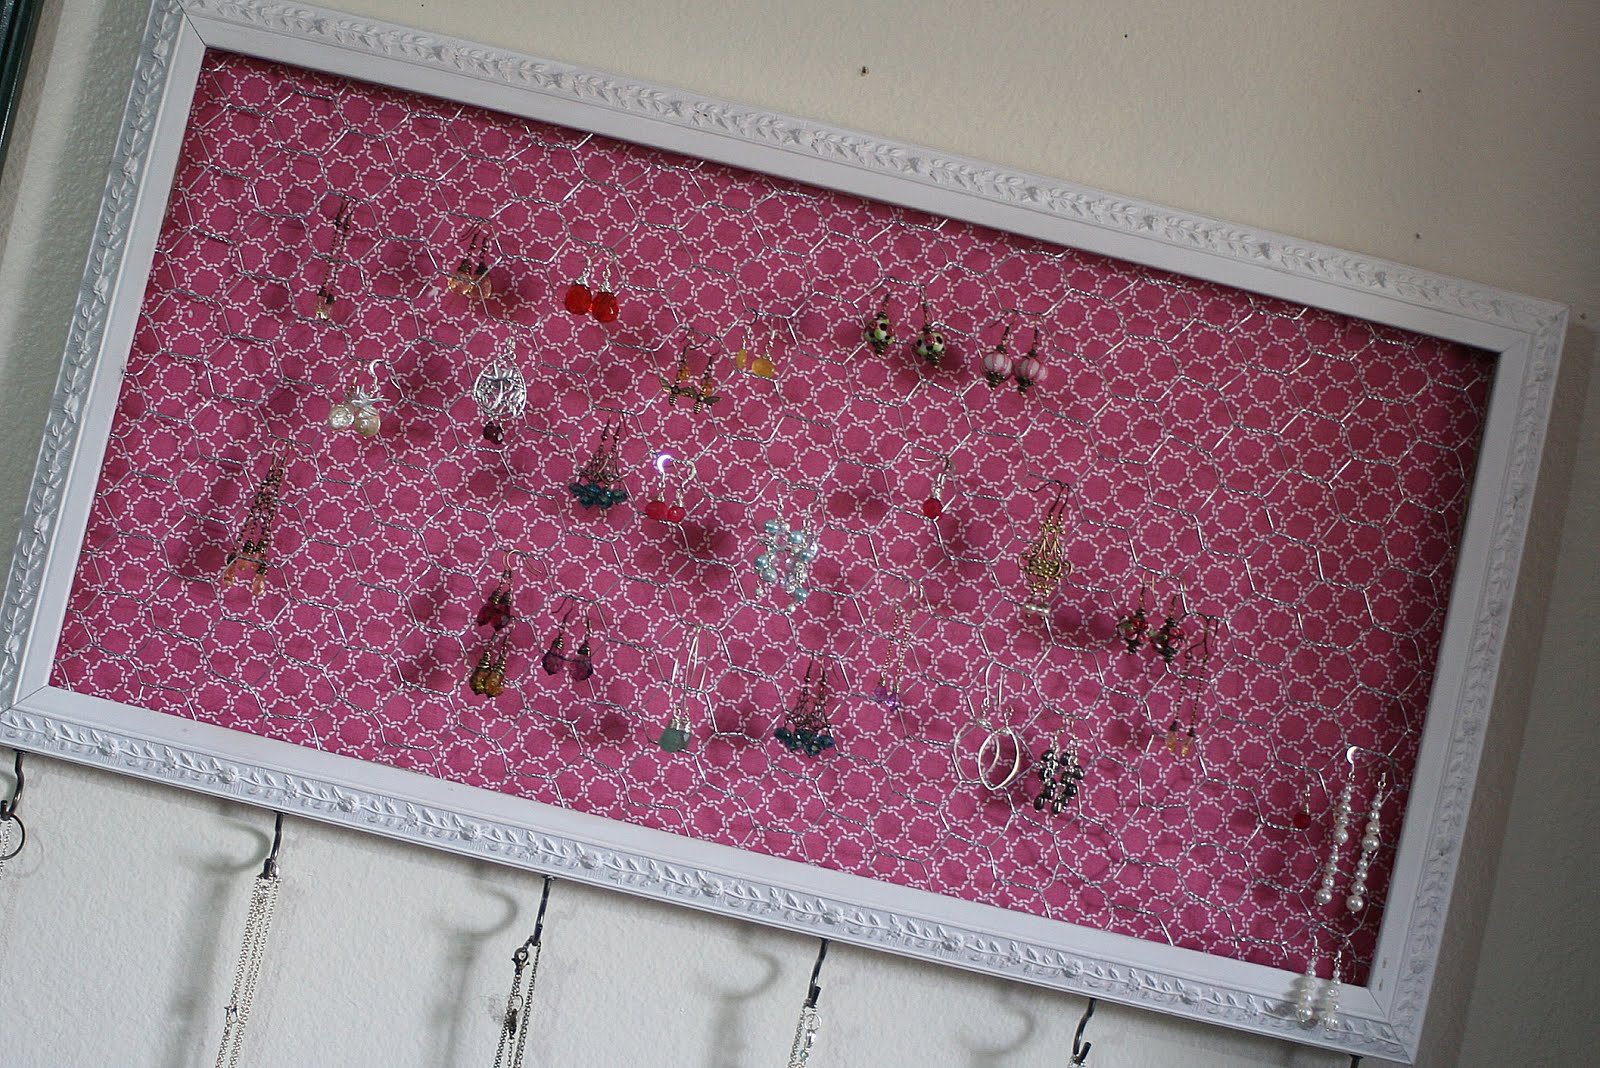 DIY Jewelry Organizer On My Side of the Room